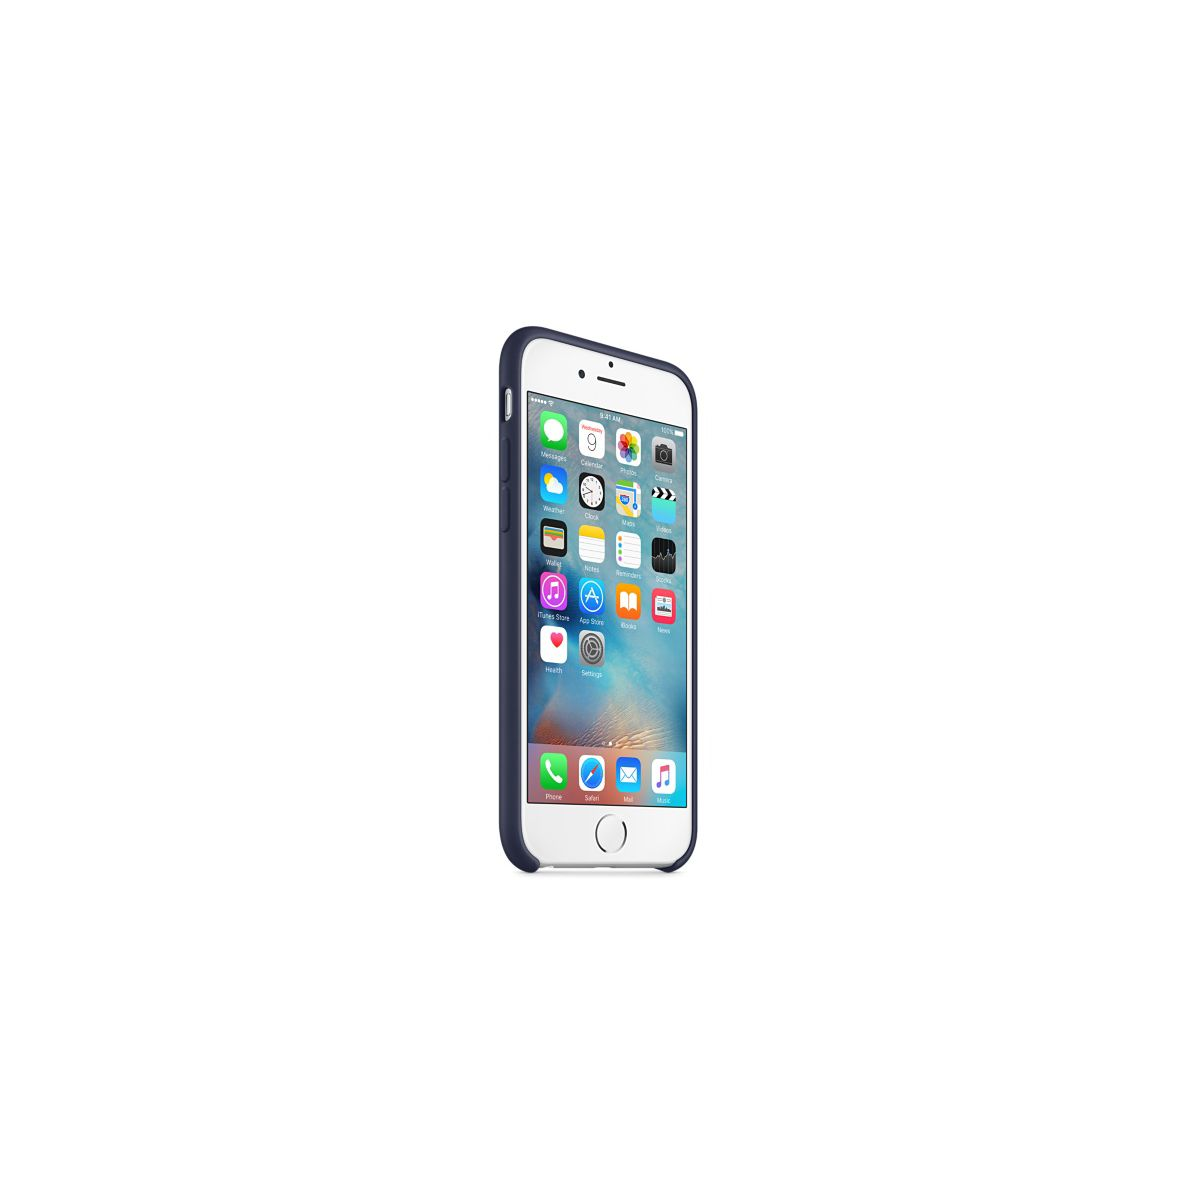 Coque apple iphone 6s bleu nuit (photo)